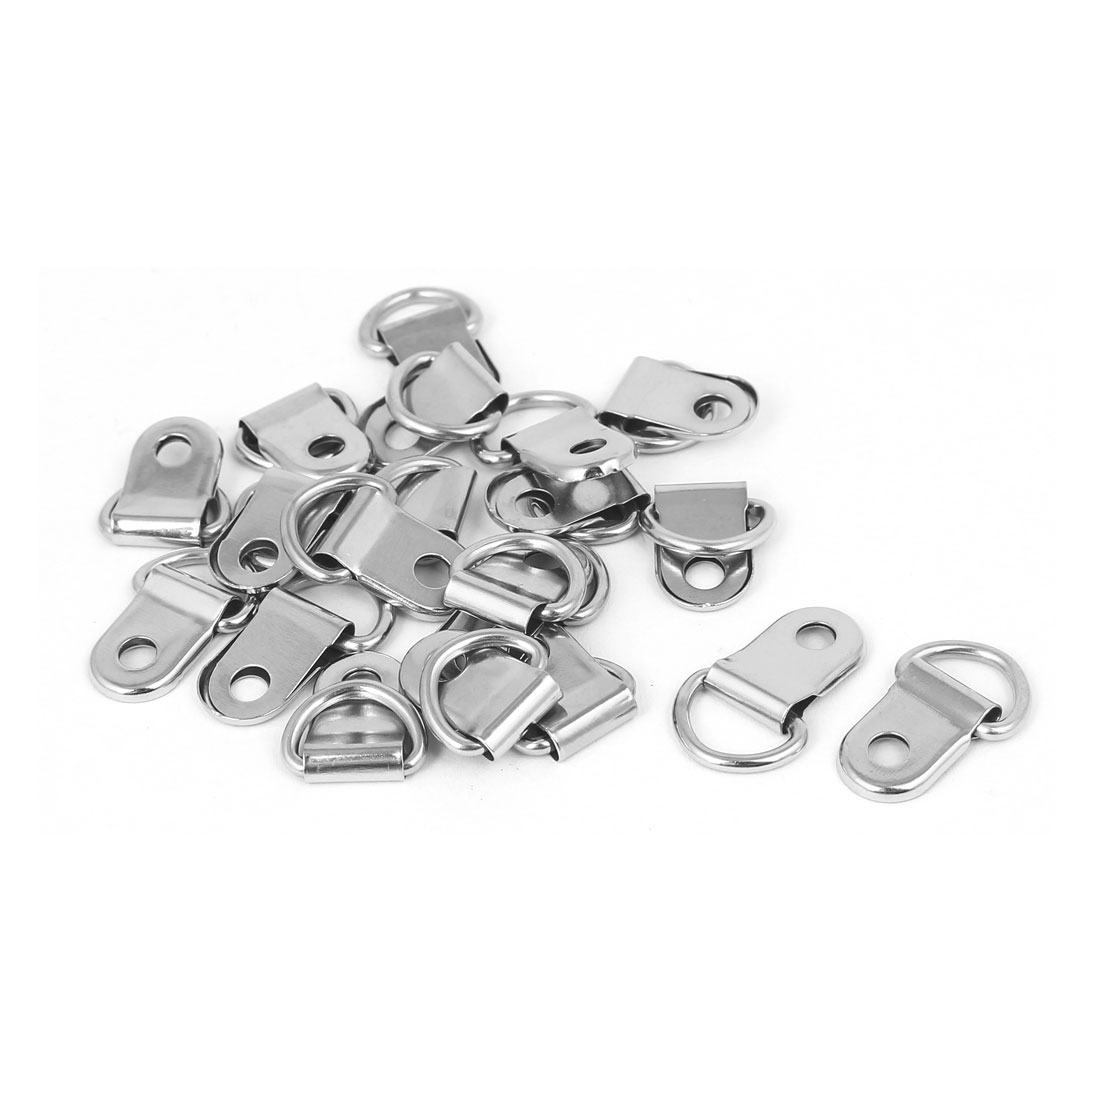 Picture Frame Hanging Single Hole D-Ring Hanger 25mmx14mm Silver Tone 20pcs